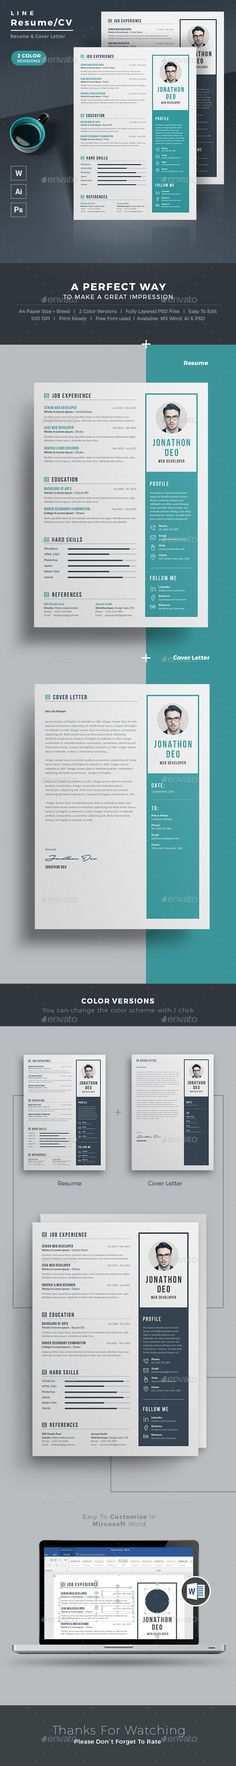 Trending MS Word Resume Template in 2016. Also available in PSD and ai format. Awesomeness unlimited.  Download http://graphicriver.net/item/resume-/15695844?ref=themedevisers